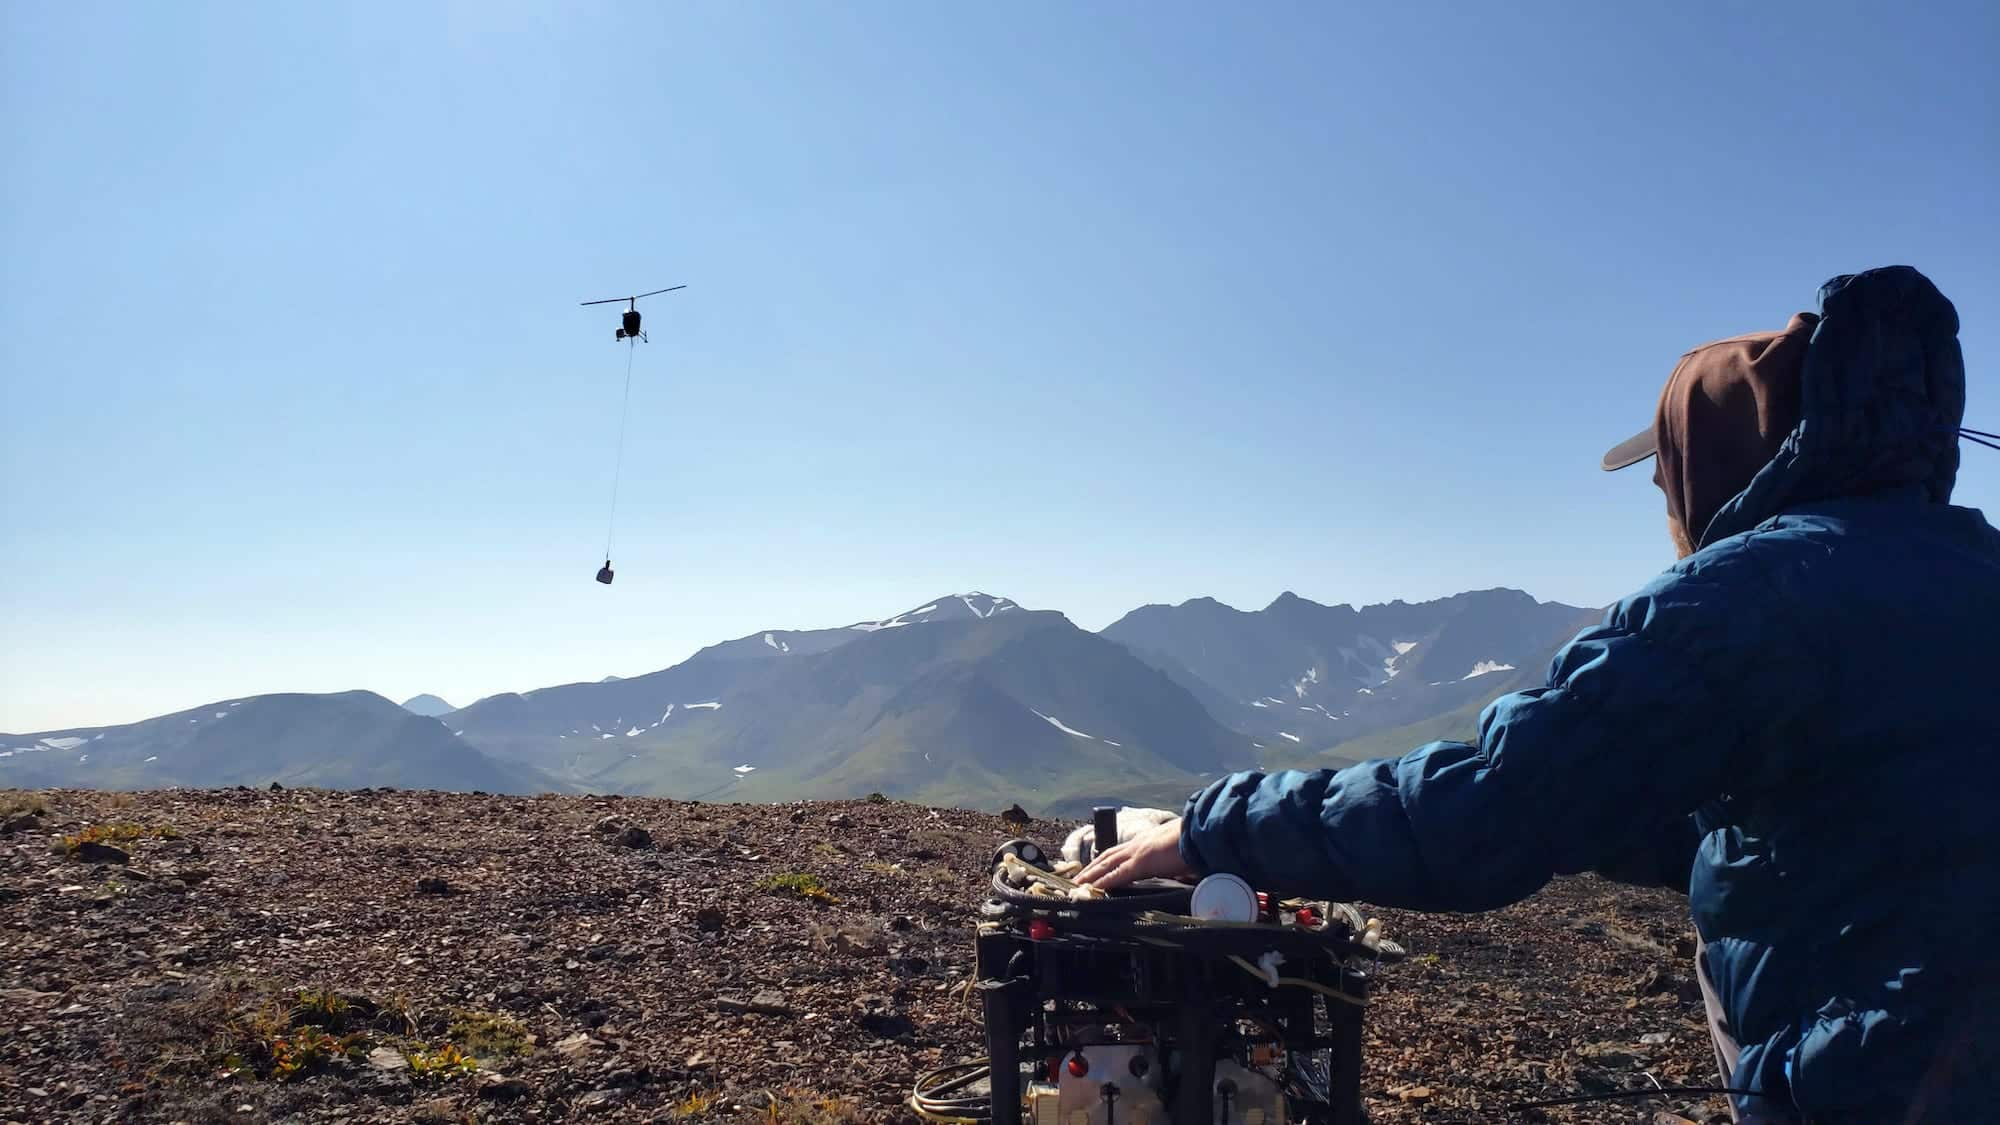 Prospecting for gold, uranium, and other precious metals with a drone